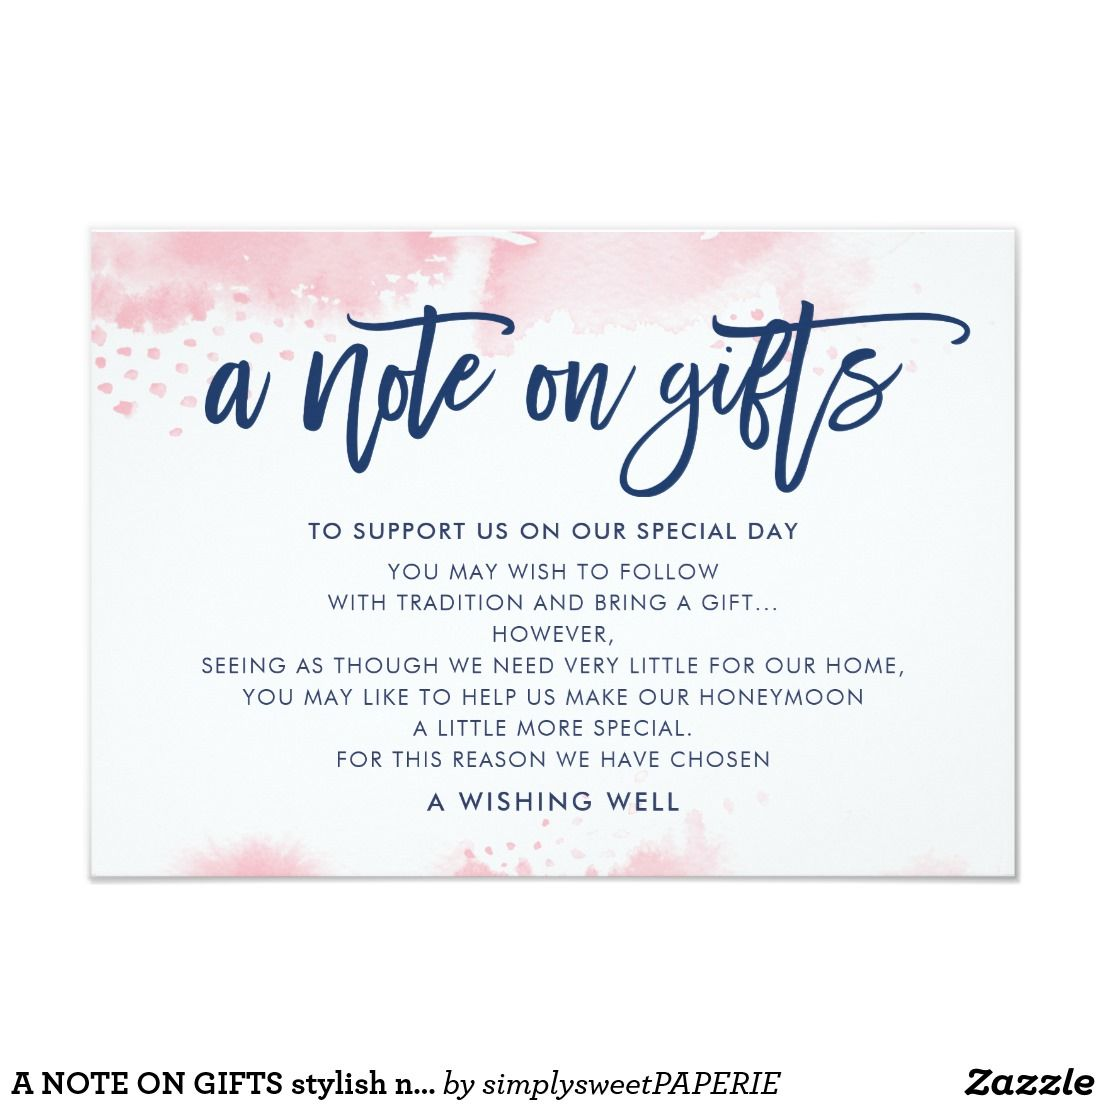 Wedding Invitation Gift: A NOTE ON GIFTS Stylish Navy Blush Pink Watercolor